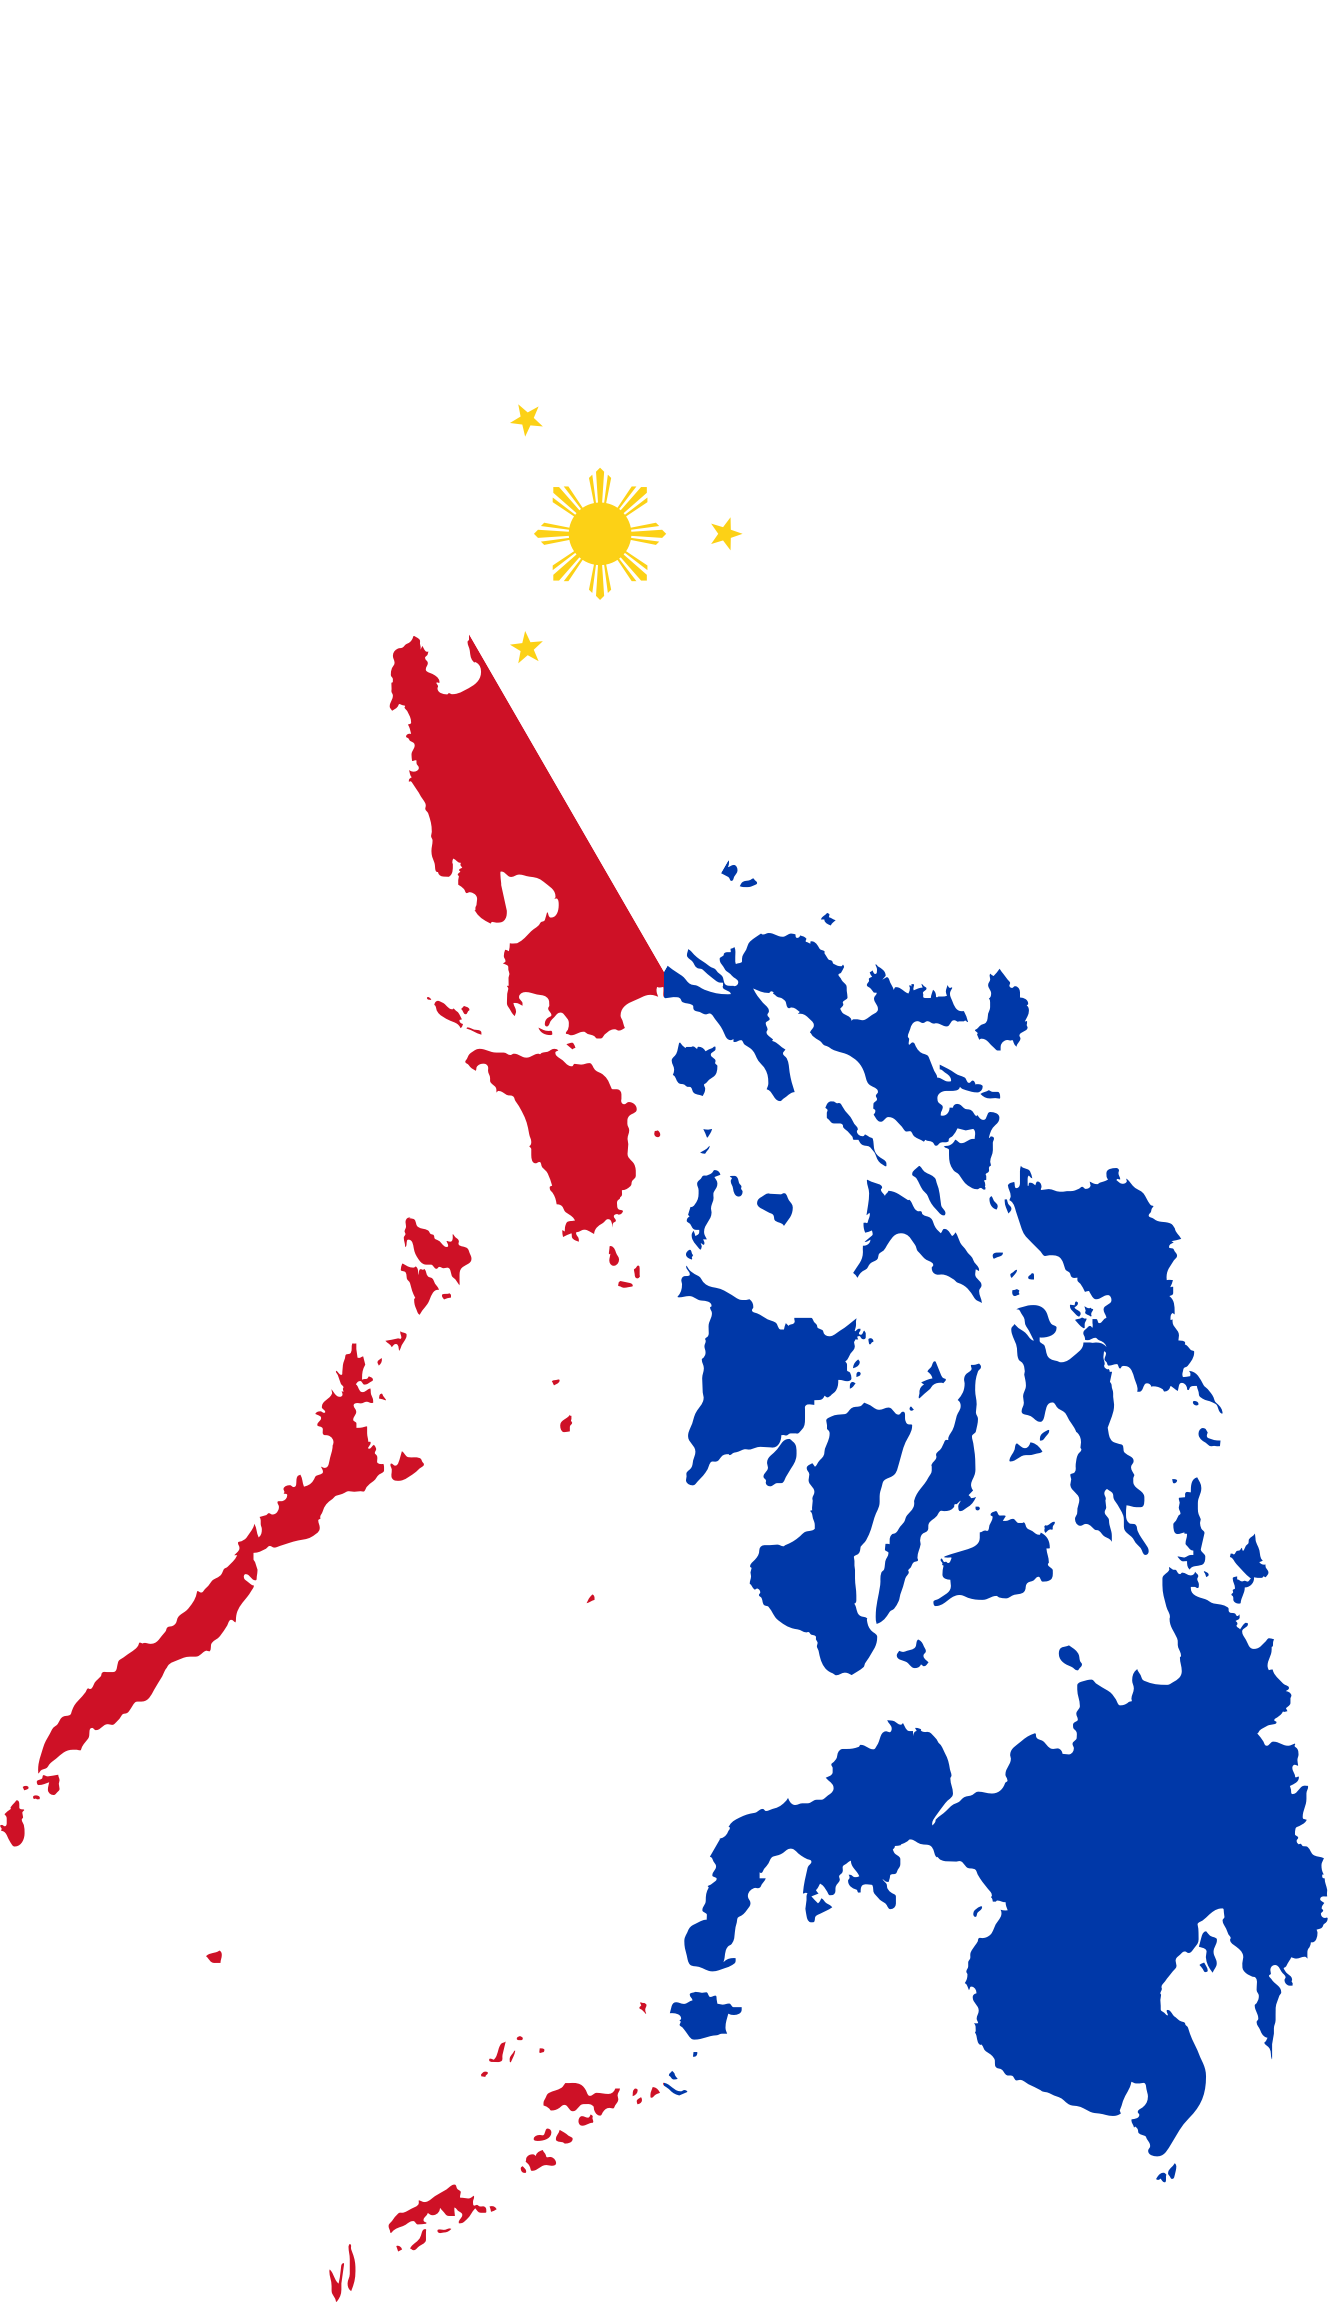 Philippines Map Flag by GDJ